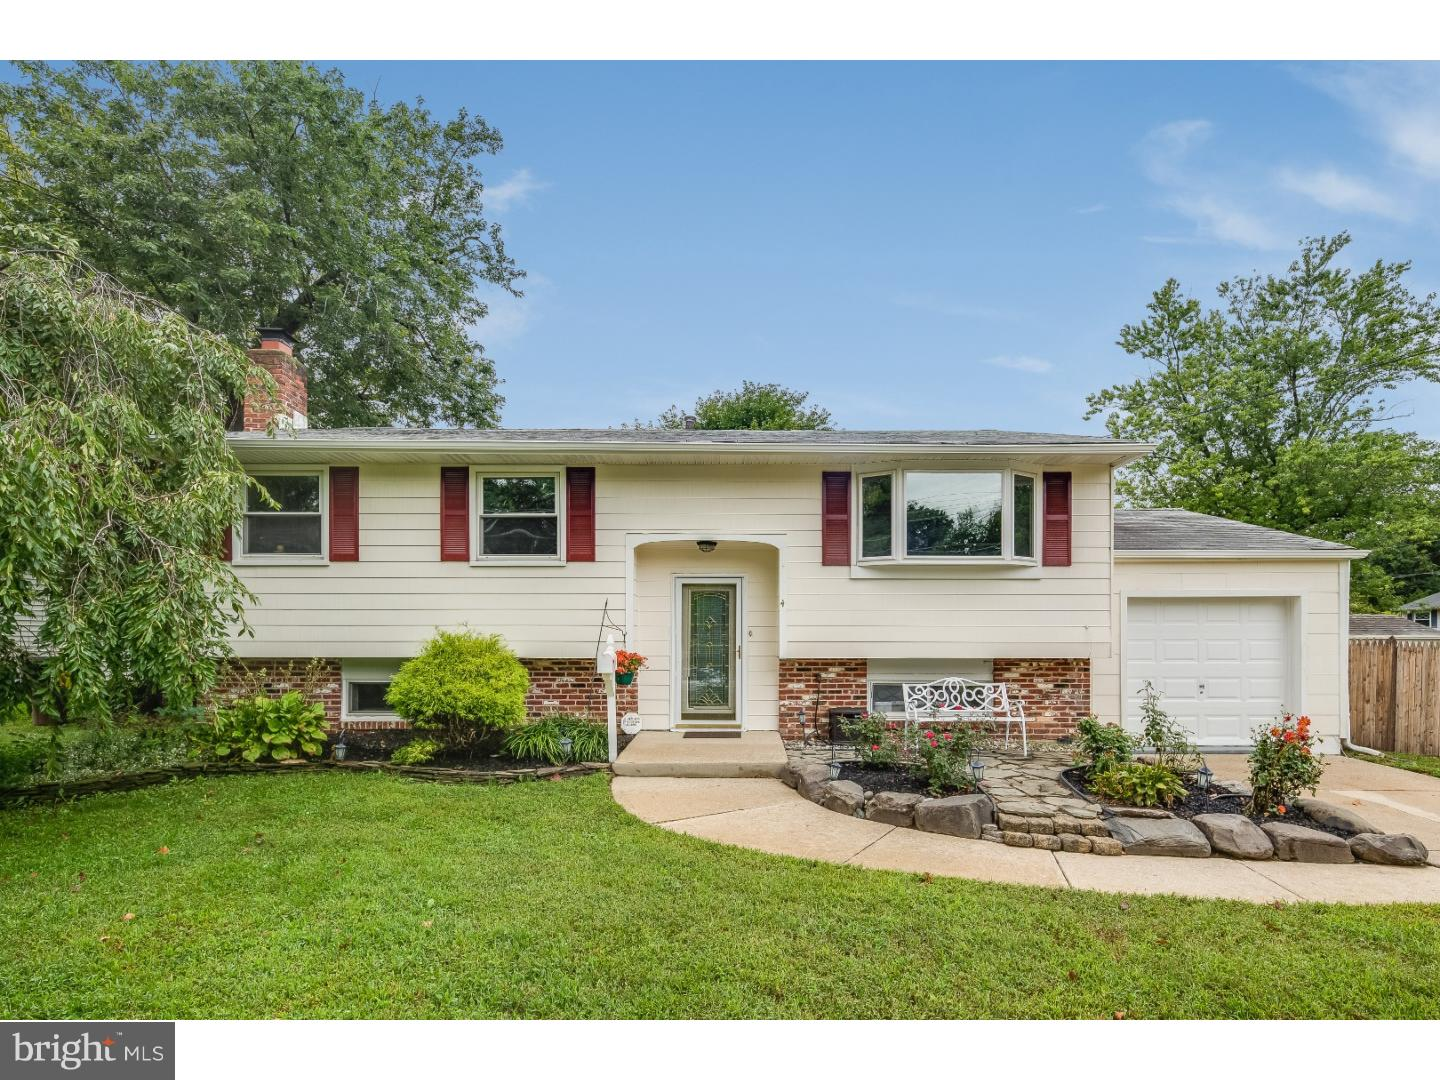 Single Family Home for Sale at 4 BRUCE Drive Laurel Springs, New Jersey 08021 United States